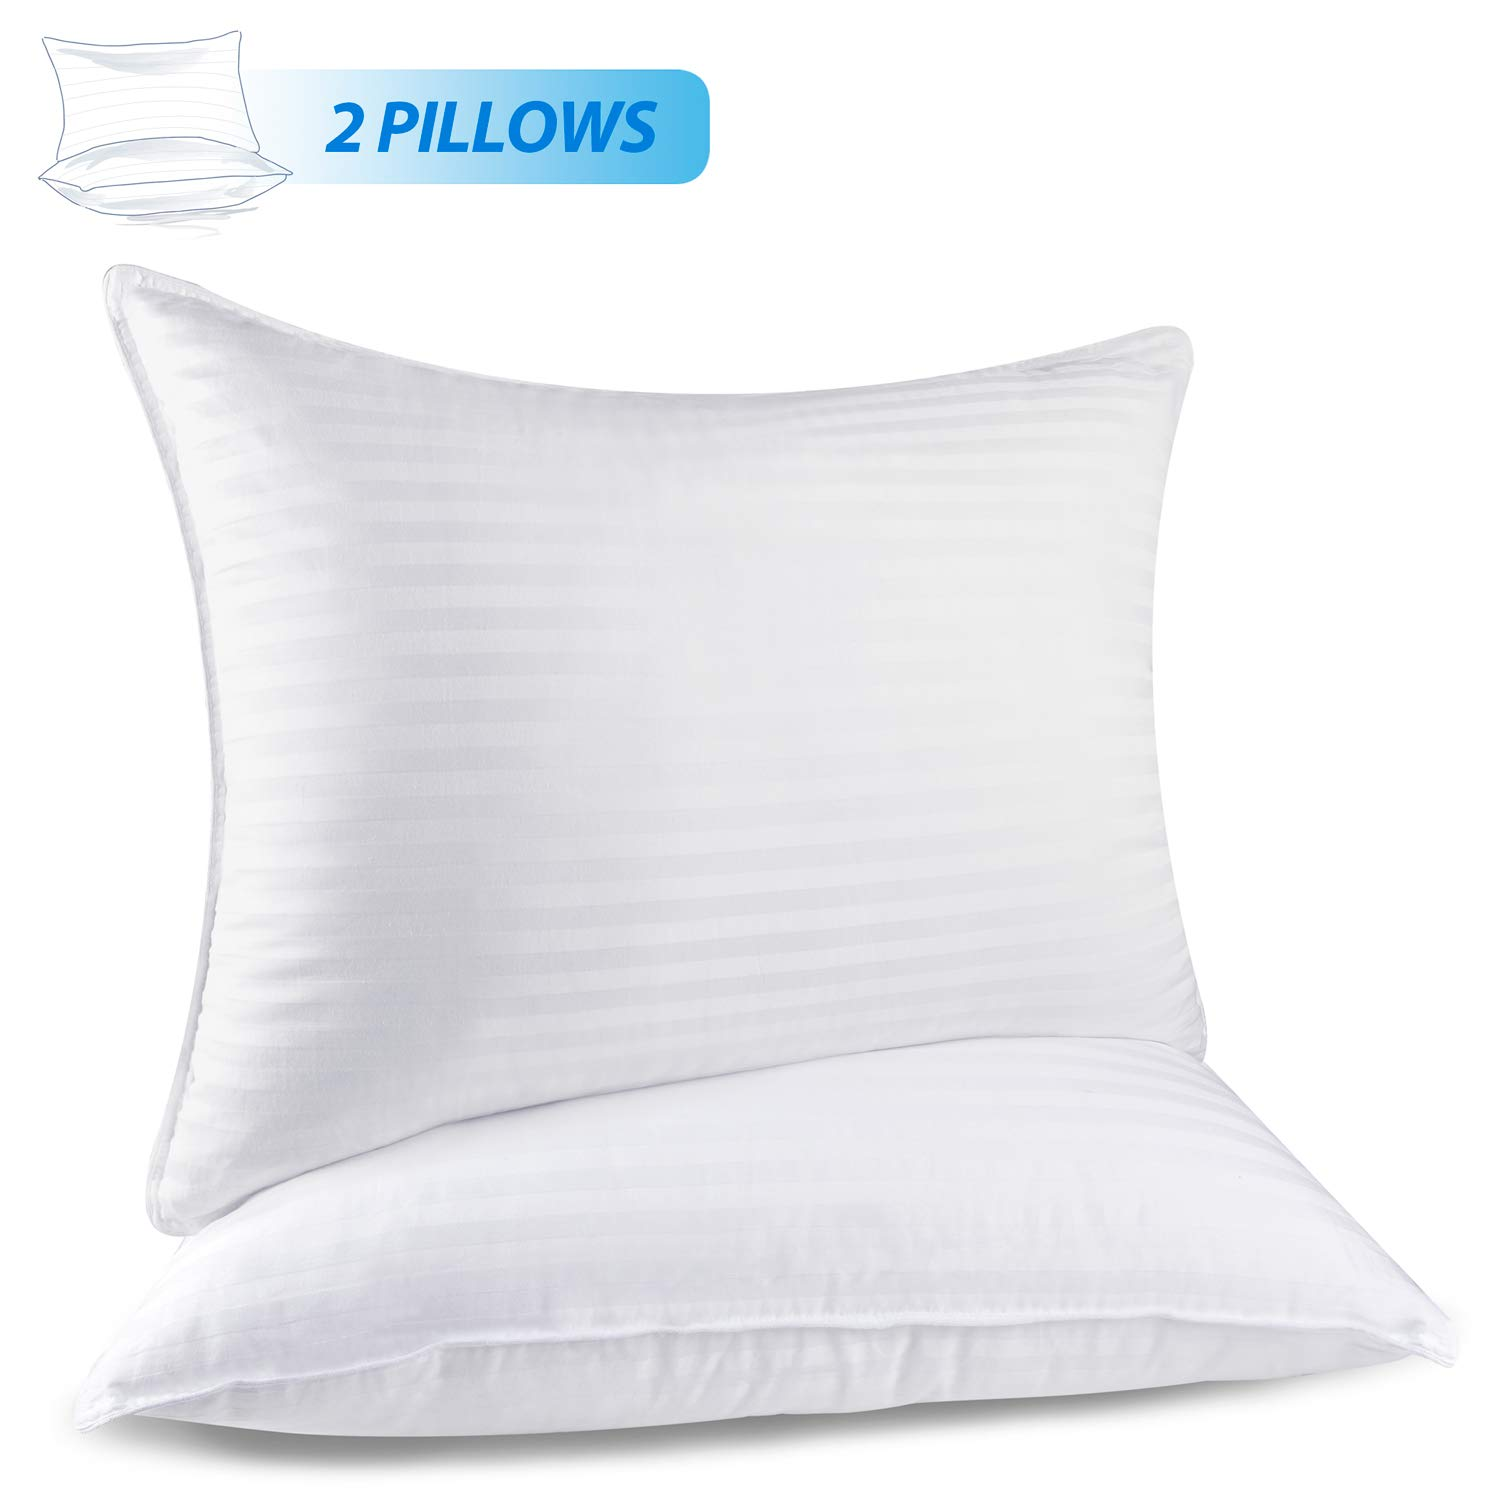 RENPHO Down Alternative Bed Pillows for Sleeping